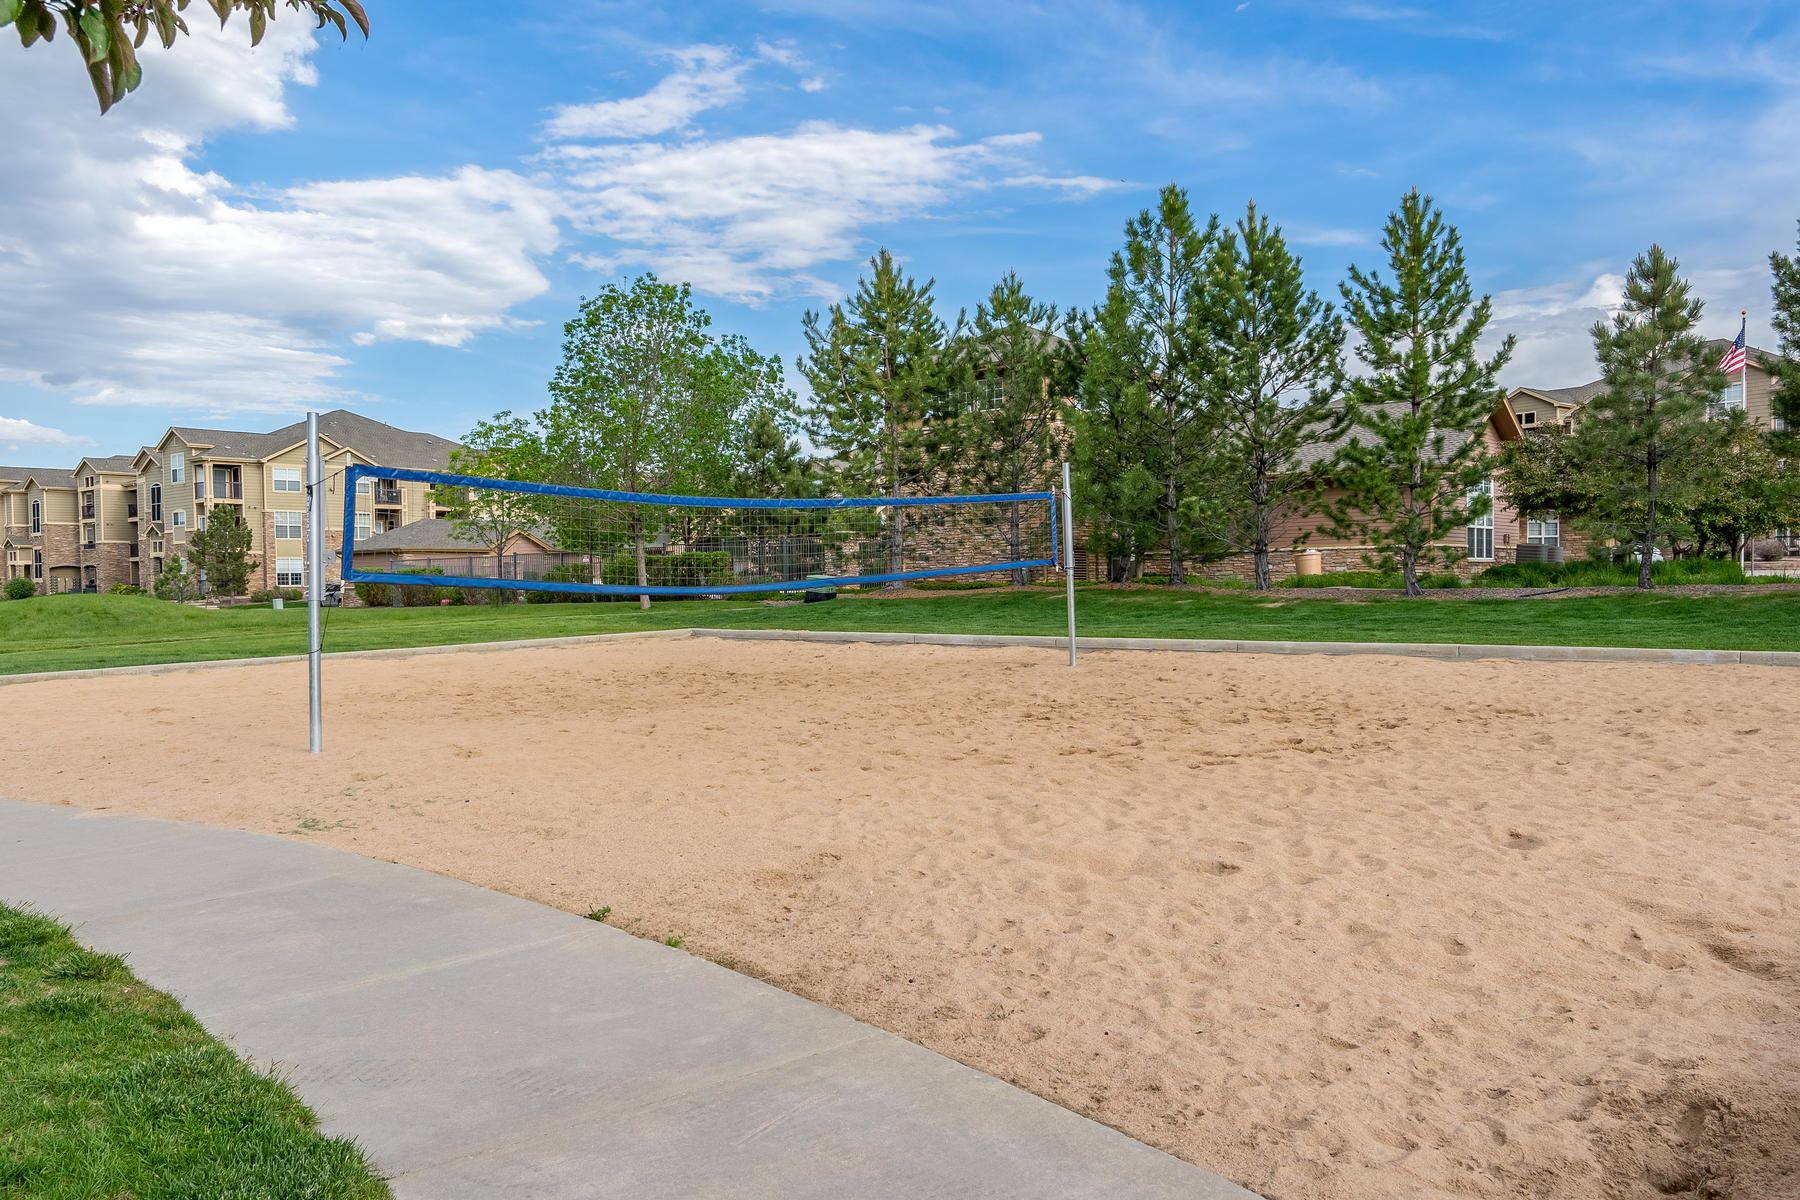 Additional photo for property listing at New construction Condos in an established community in Parker. 9220 Wilde Ln #208, Bldg 17 Parker, Colorado 80134 United States